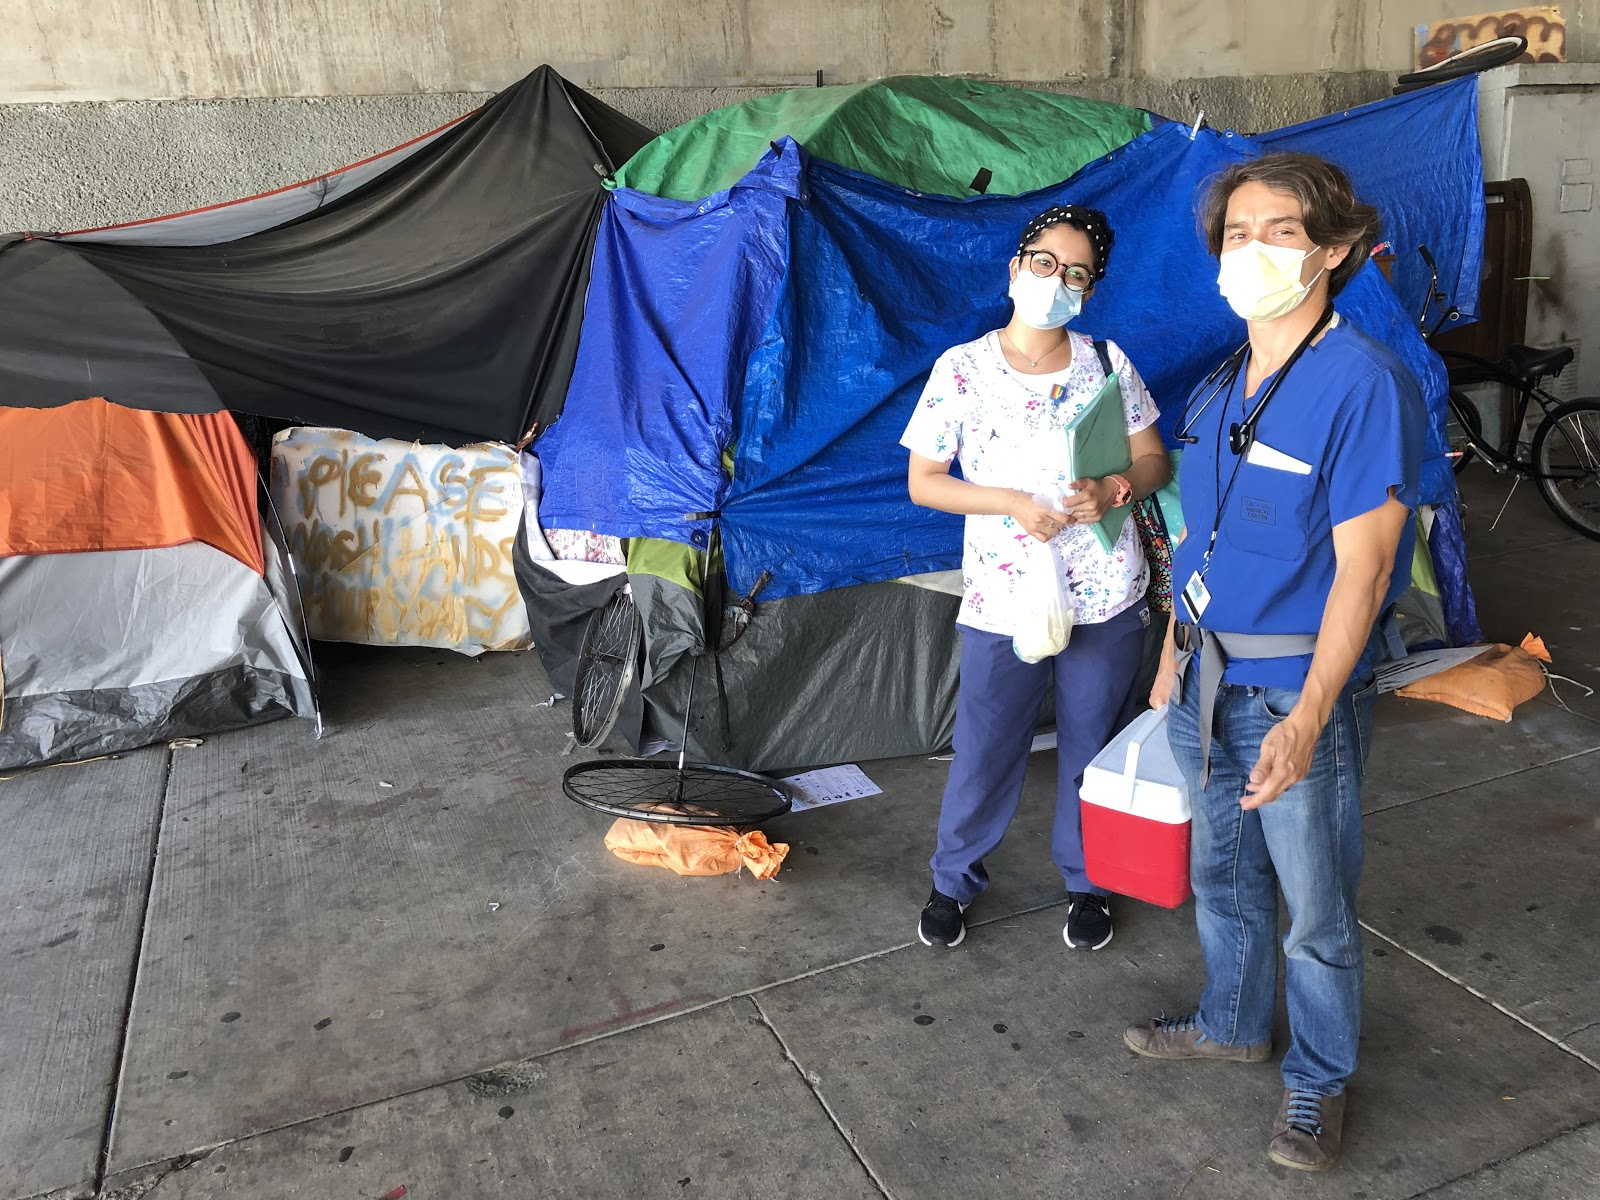 Figure 14.  Dr. Gilmore Chung and Medical Assistant III, Letty, go to the people under the bridge with vaccinations. Taken by Dr. Coley King of Venice Family Clinic.